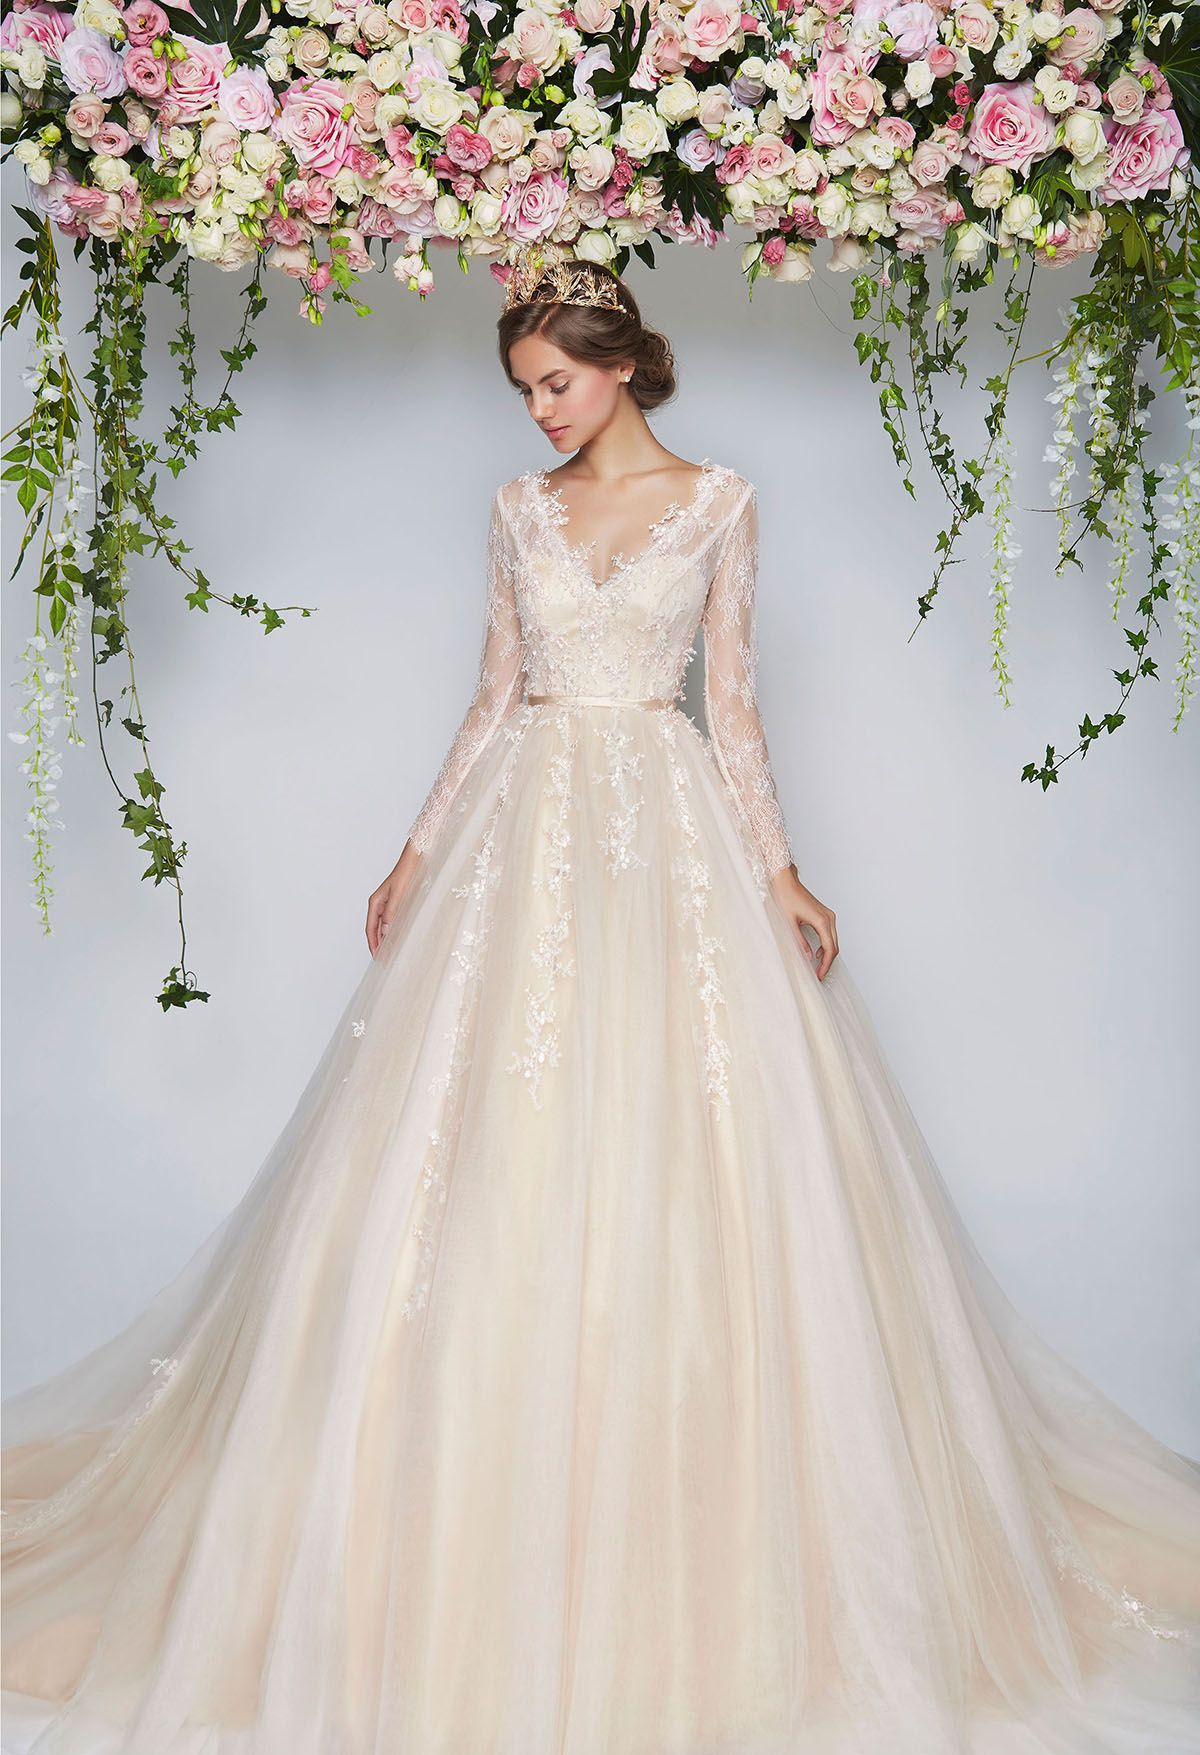 Cream vneck wedding ball gown with lace sleeves the wedding